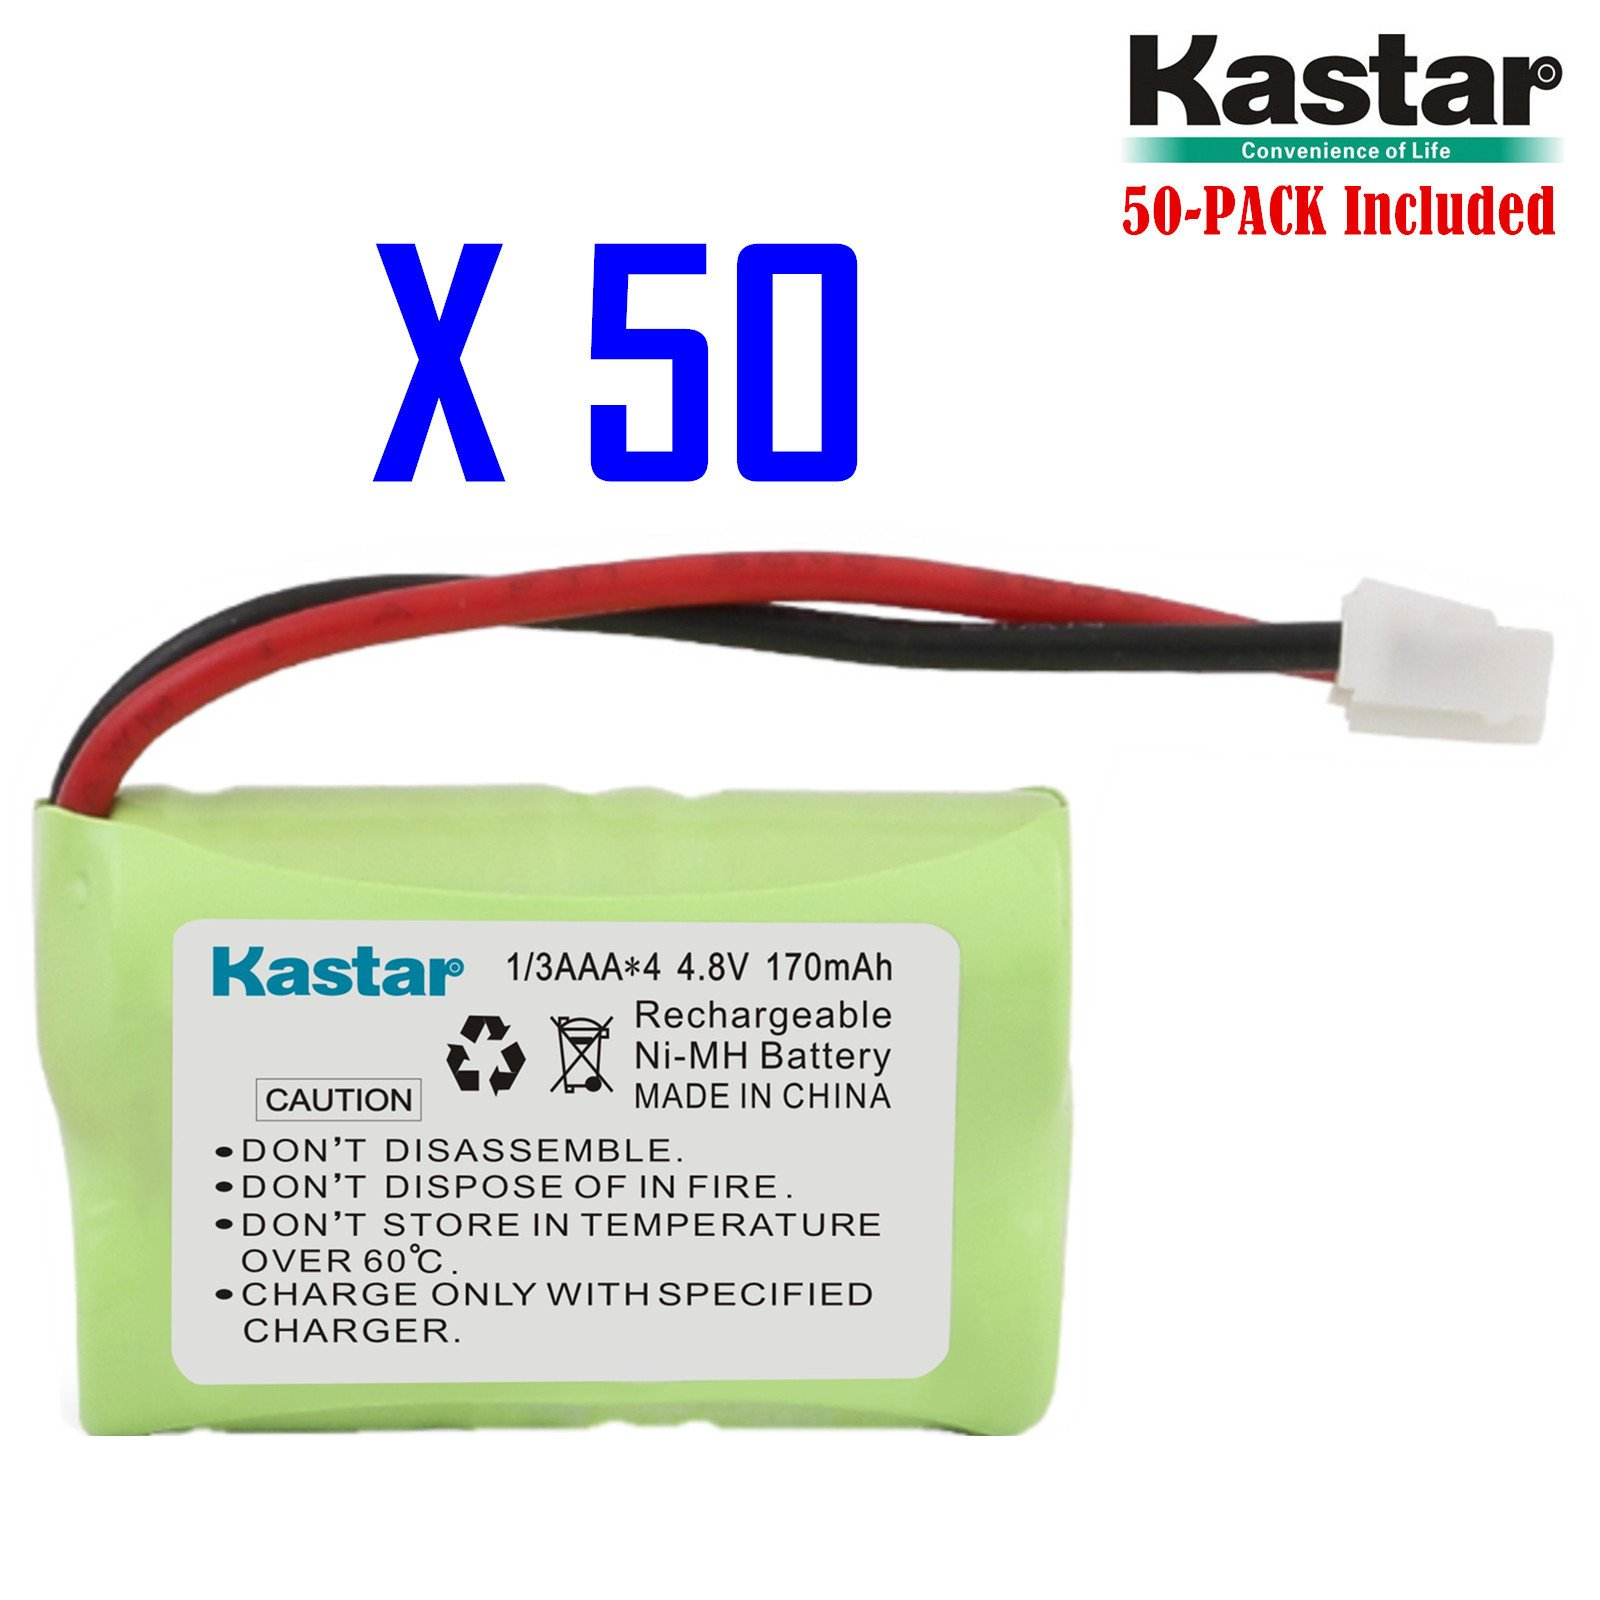 Kastar 50-PACK 4.8V 170mAh Ni-MH Rechargeable Battery for PetSafe Yard & Park Remote Dog Trainer, PDT00-12470 RFA-417 PAC00-12159 FR-200P Collar Receiver plus Coaster, SportDog FR200, SD-400, SD-800